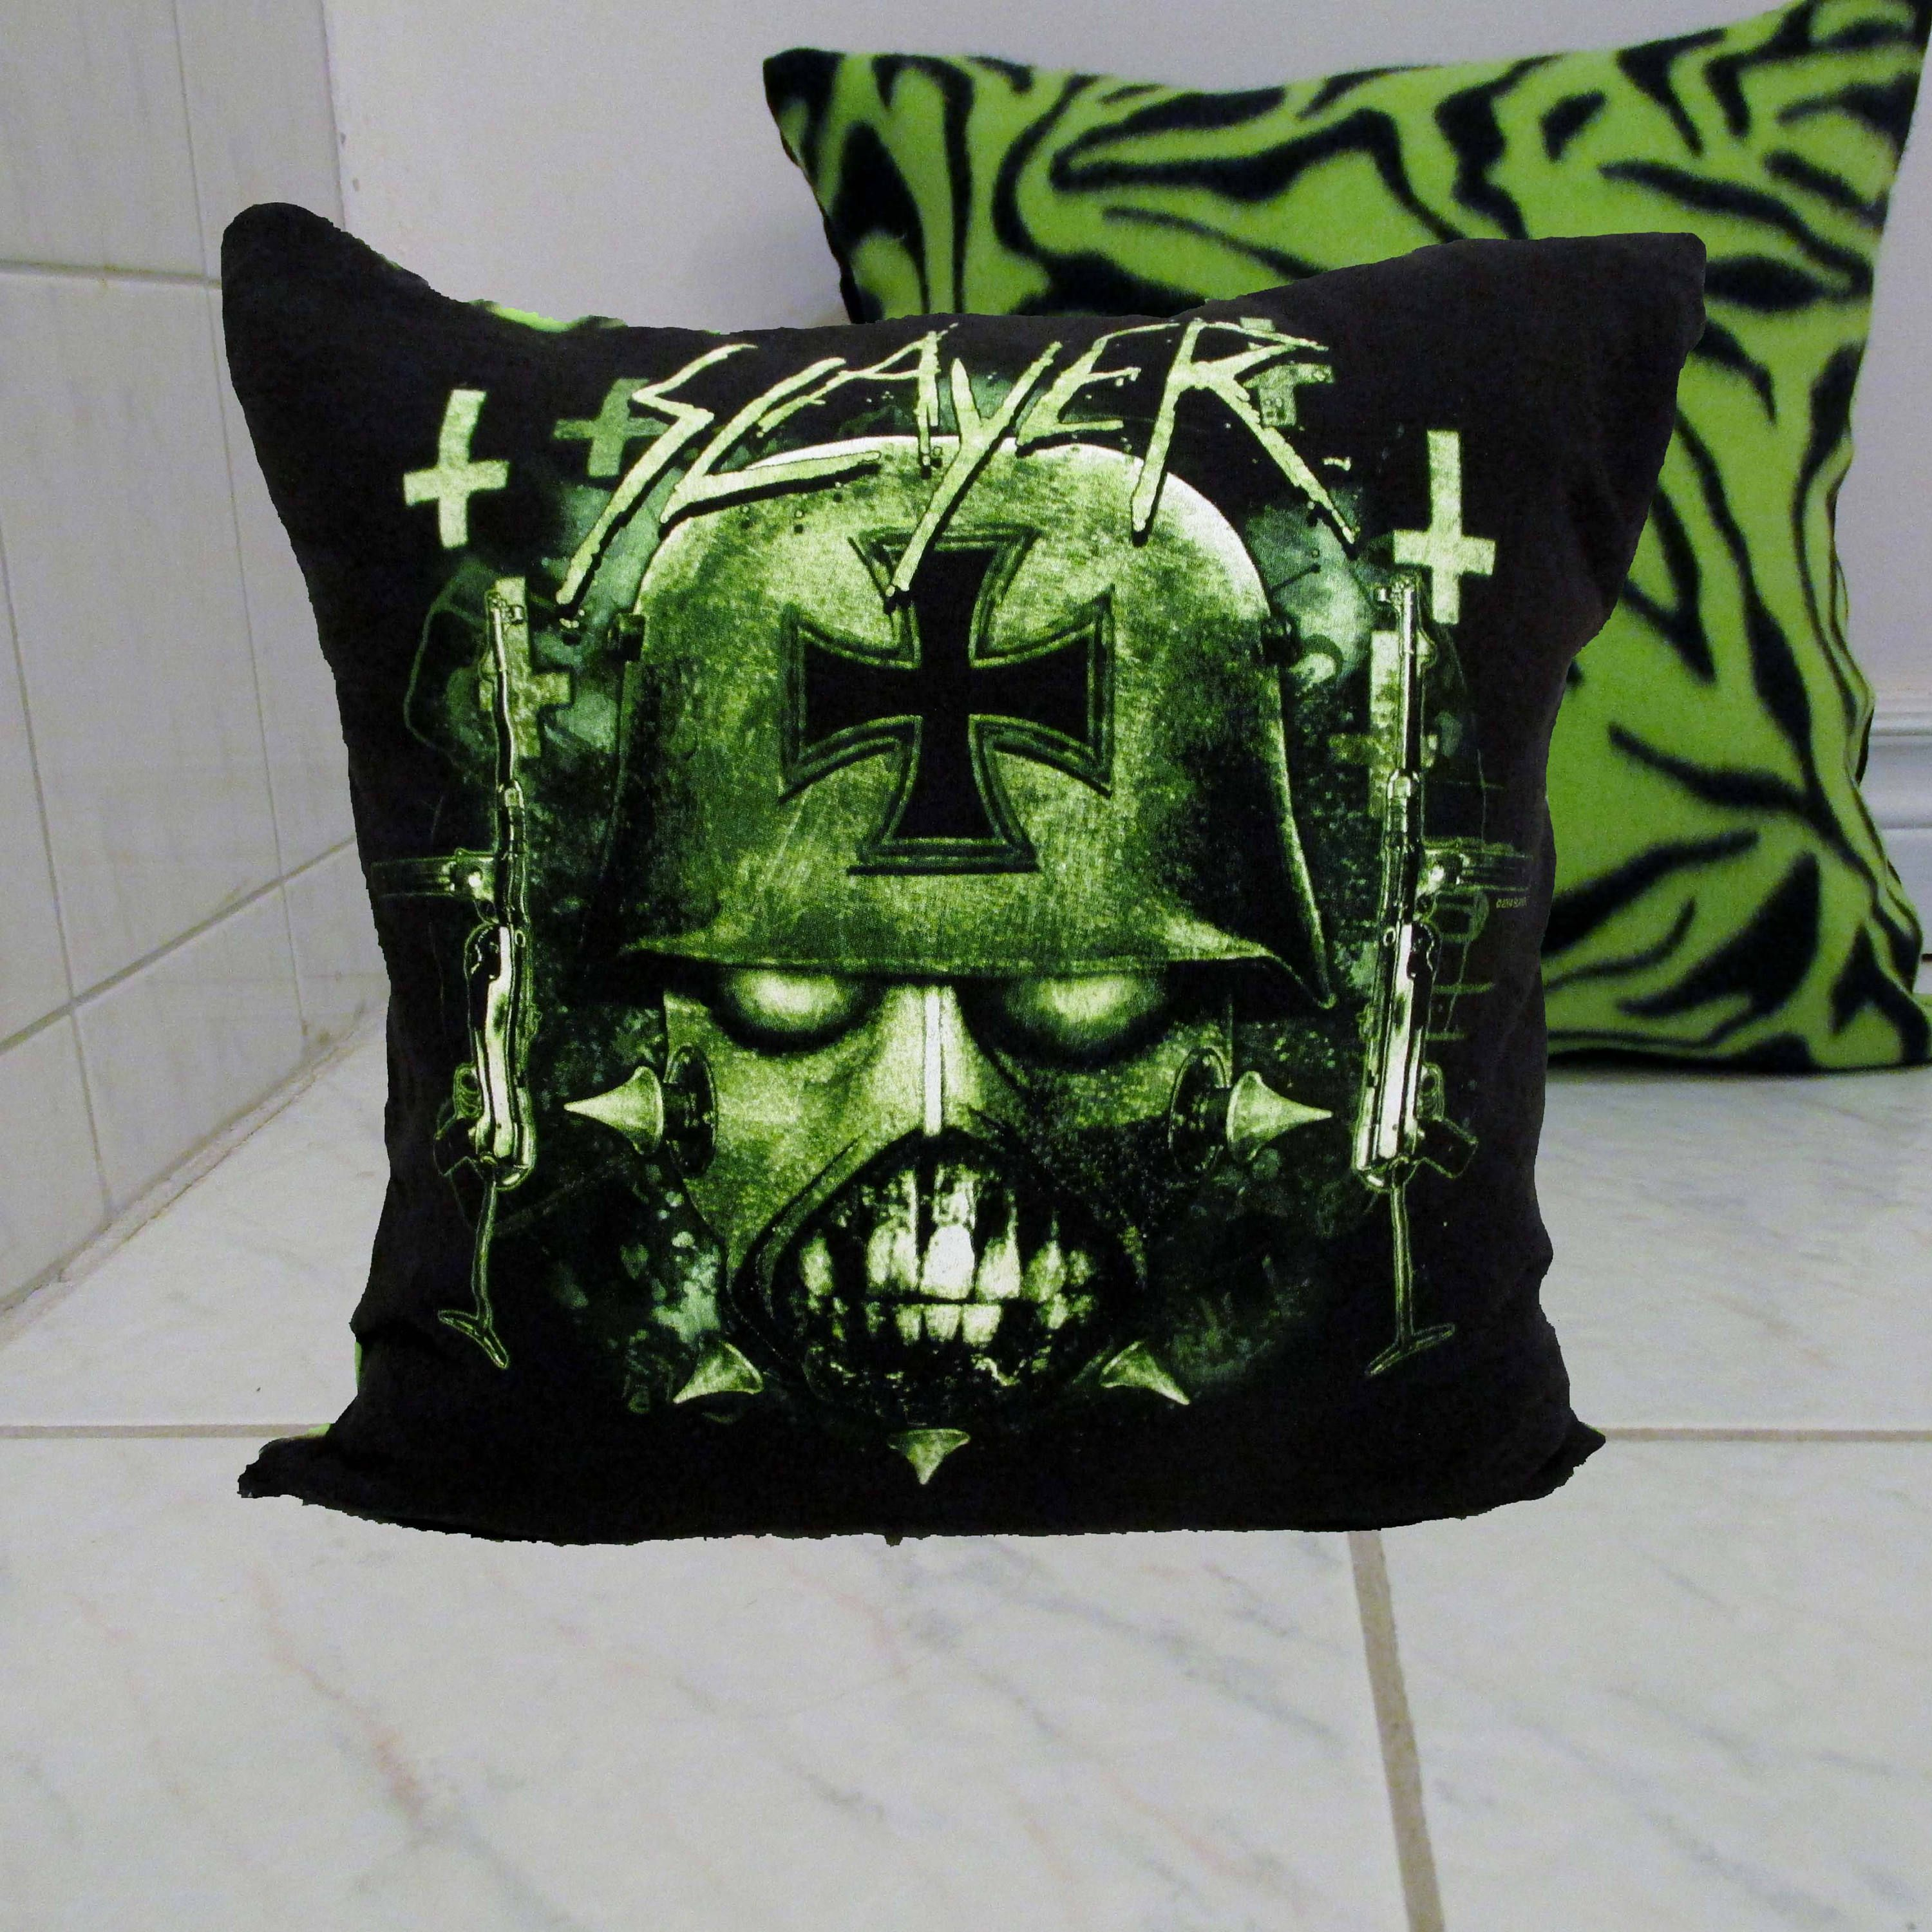 Slayer Pillow Diy Heavy Metal Decor 1 Cover Or Full By Darkstormdesign On